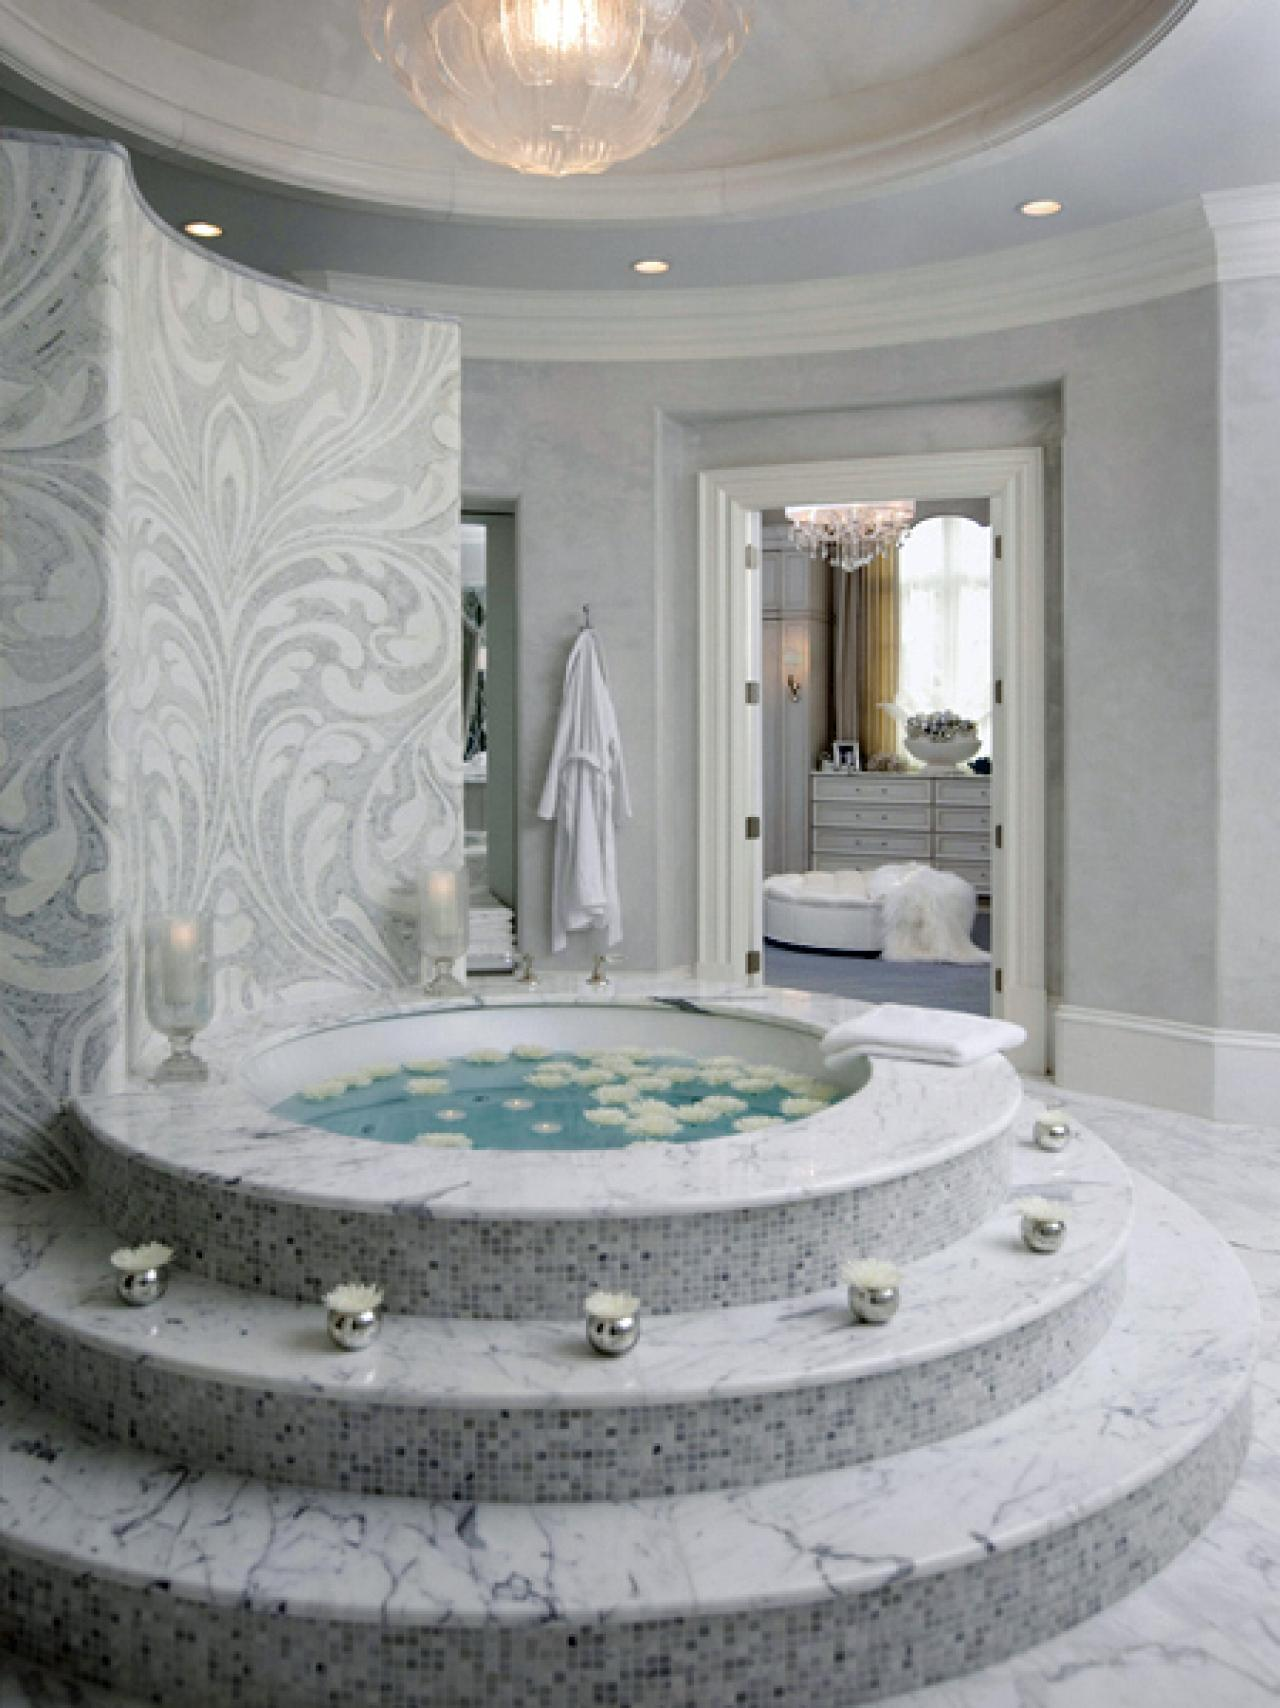 Two person bathtubs pictures ideas tips from hgtv for House bathroom design